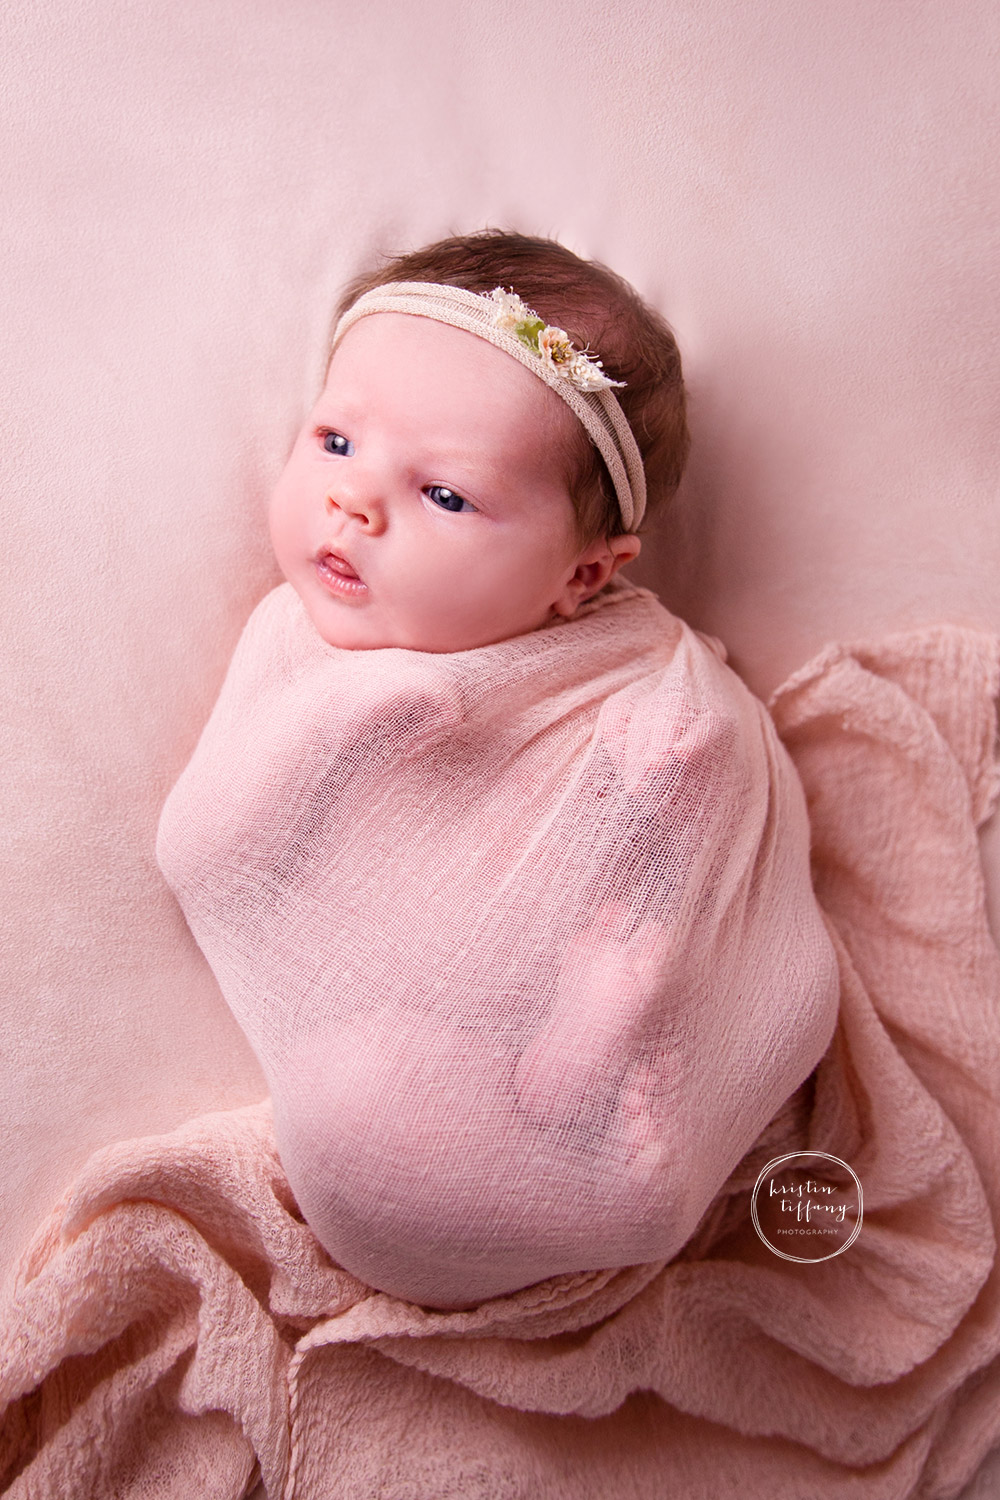 a photo of a newborn baby girl wrapped in a cheesecloth wrap